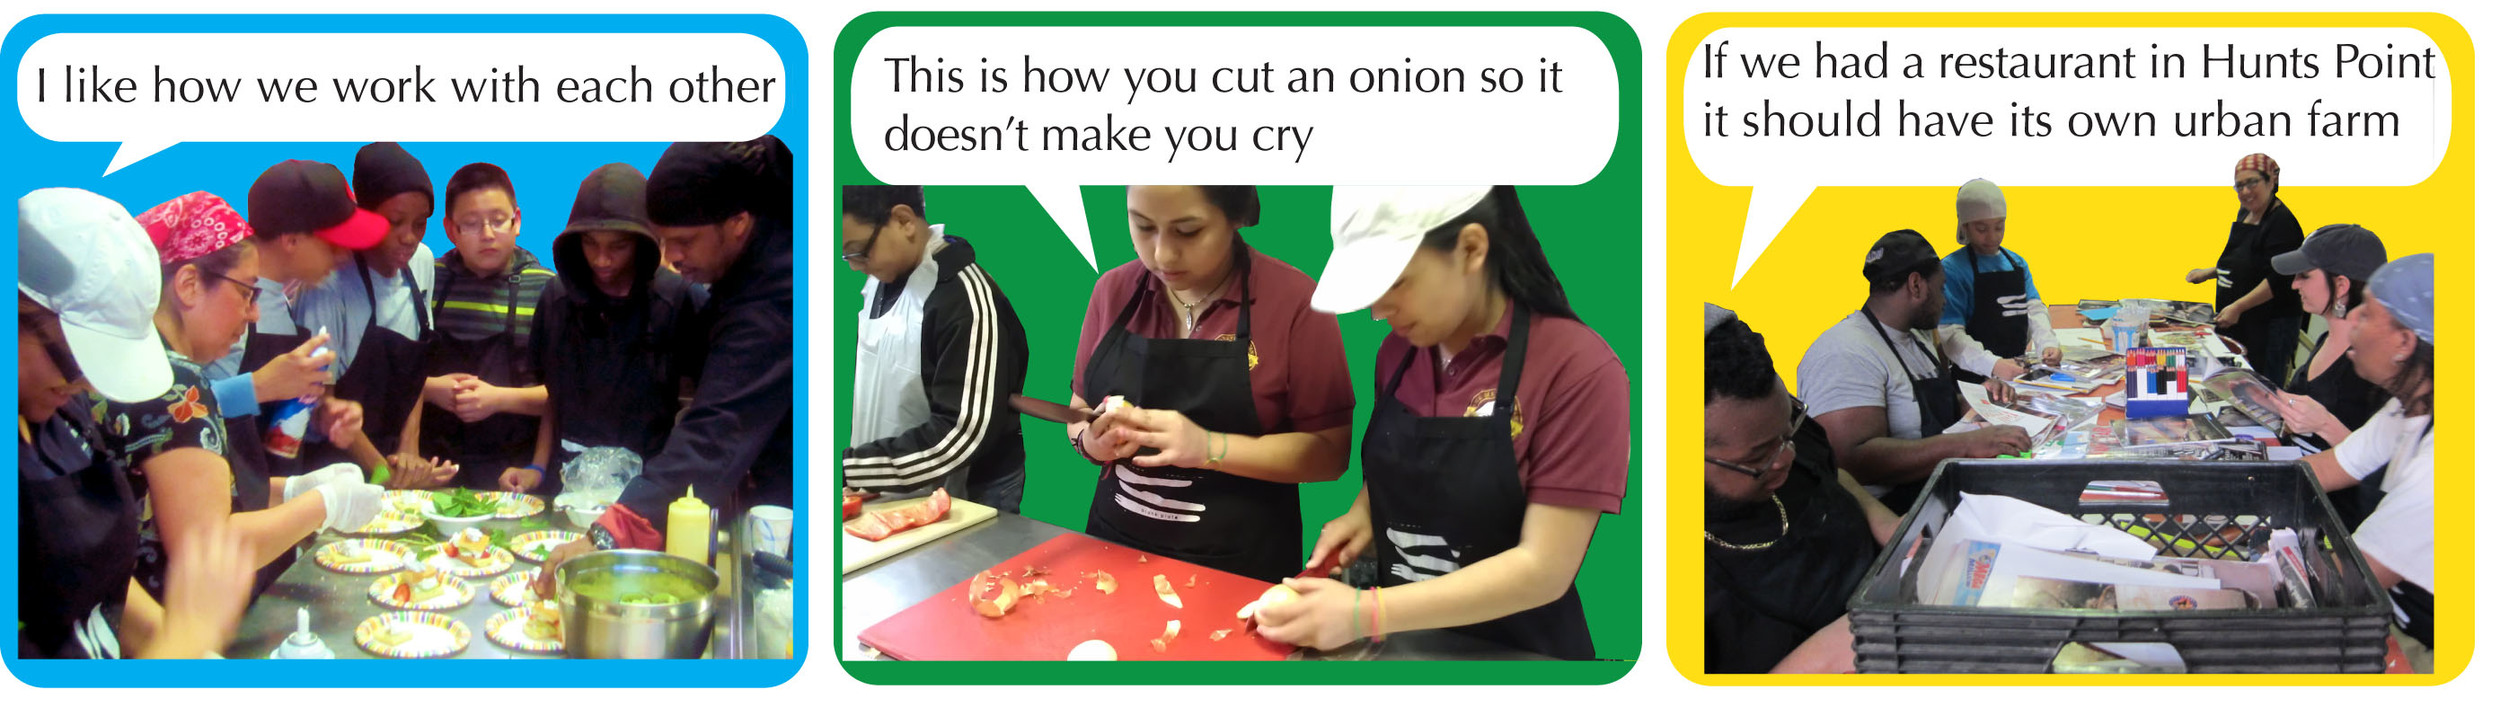 Our teen chefs creatively generating the plan for the dinner event through weekly culinary workshops.